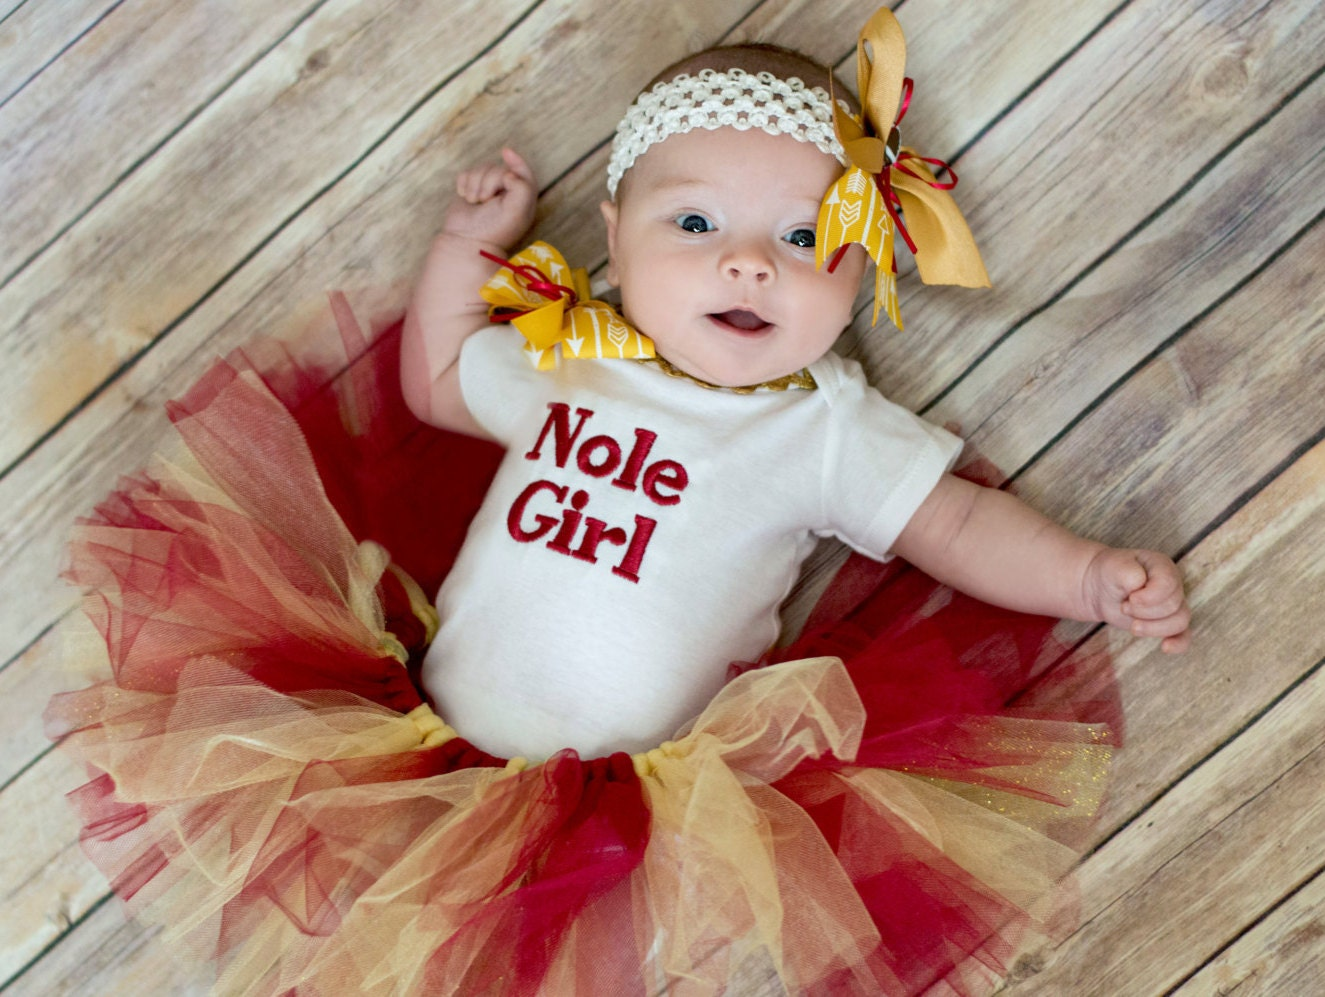 Florida state university baby girl outfit seminole baby girl outfit